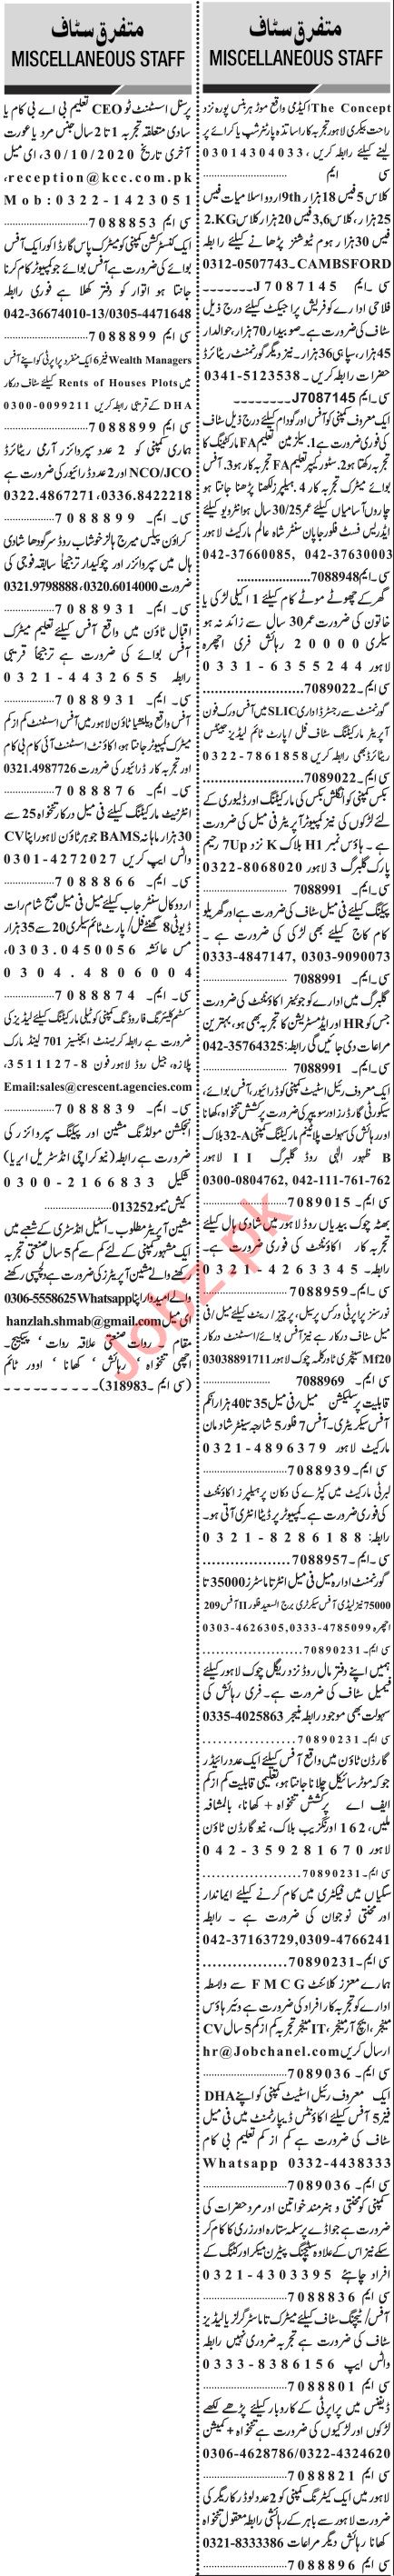 Jang Sunday Classified Ads 18 Oct 2020 for Management Staff